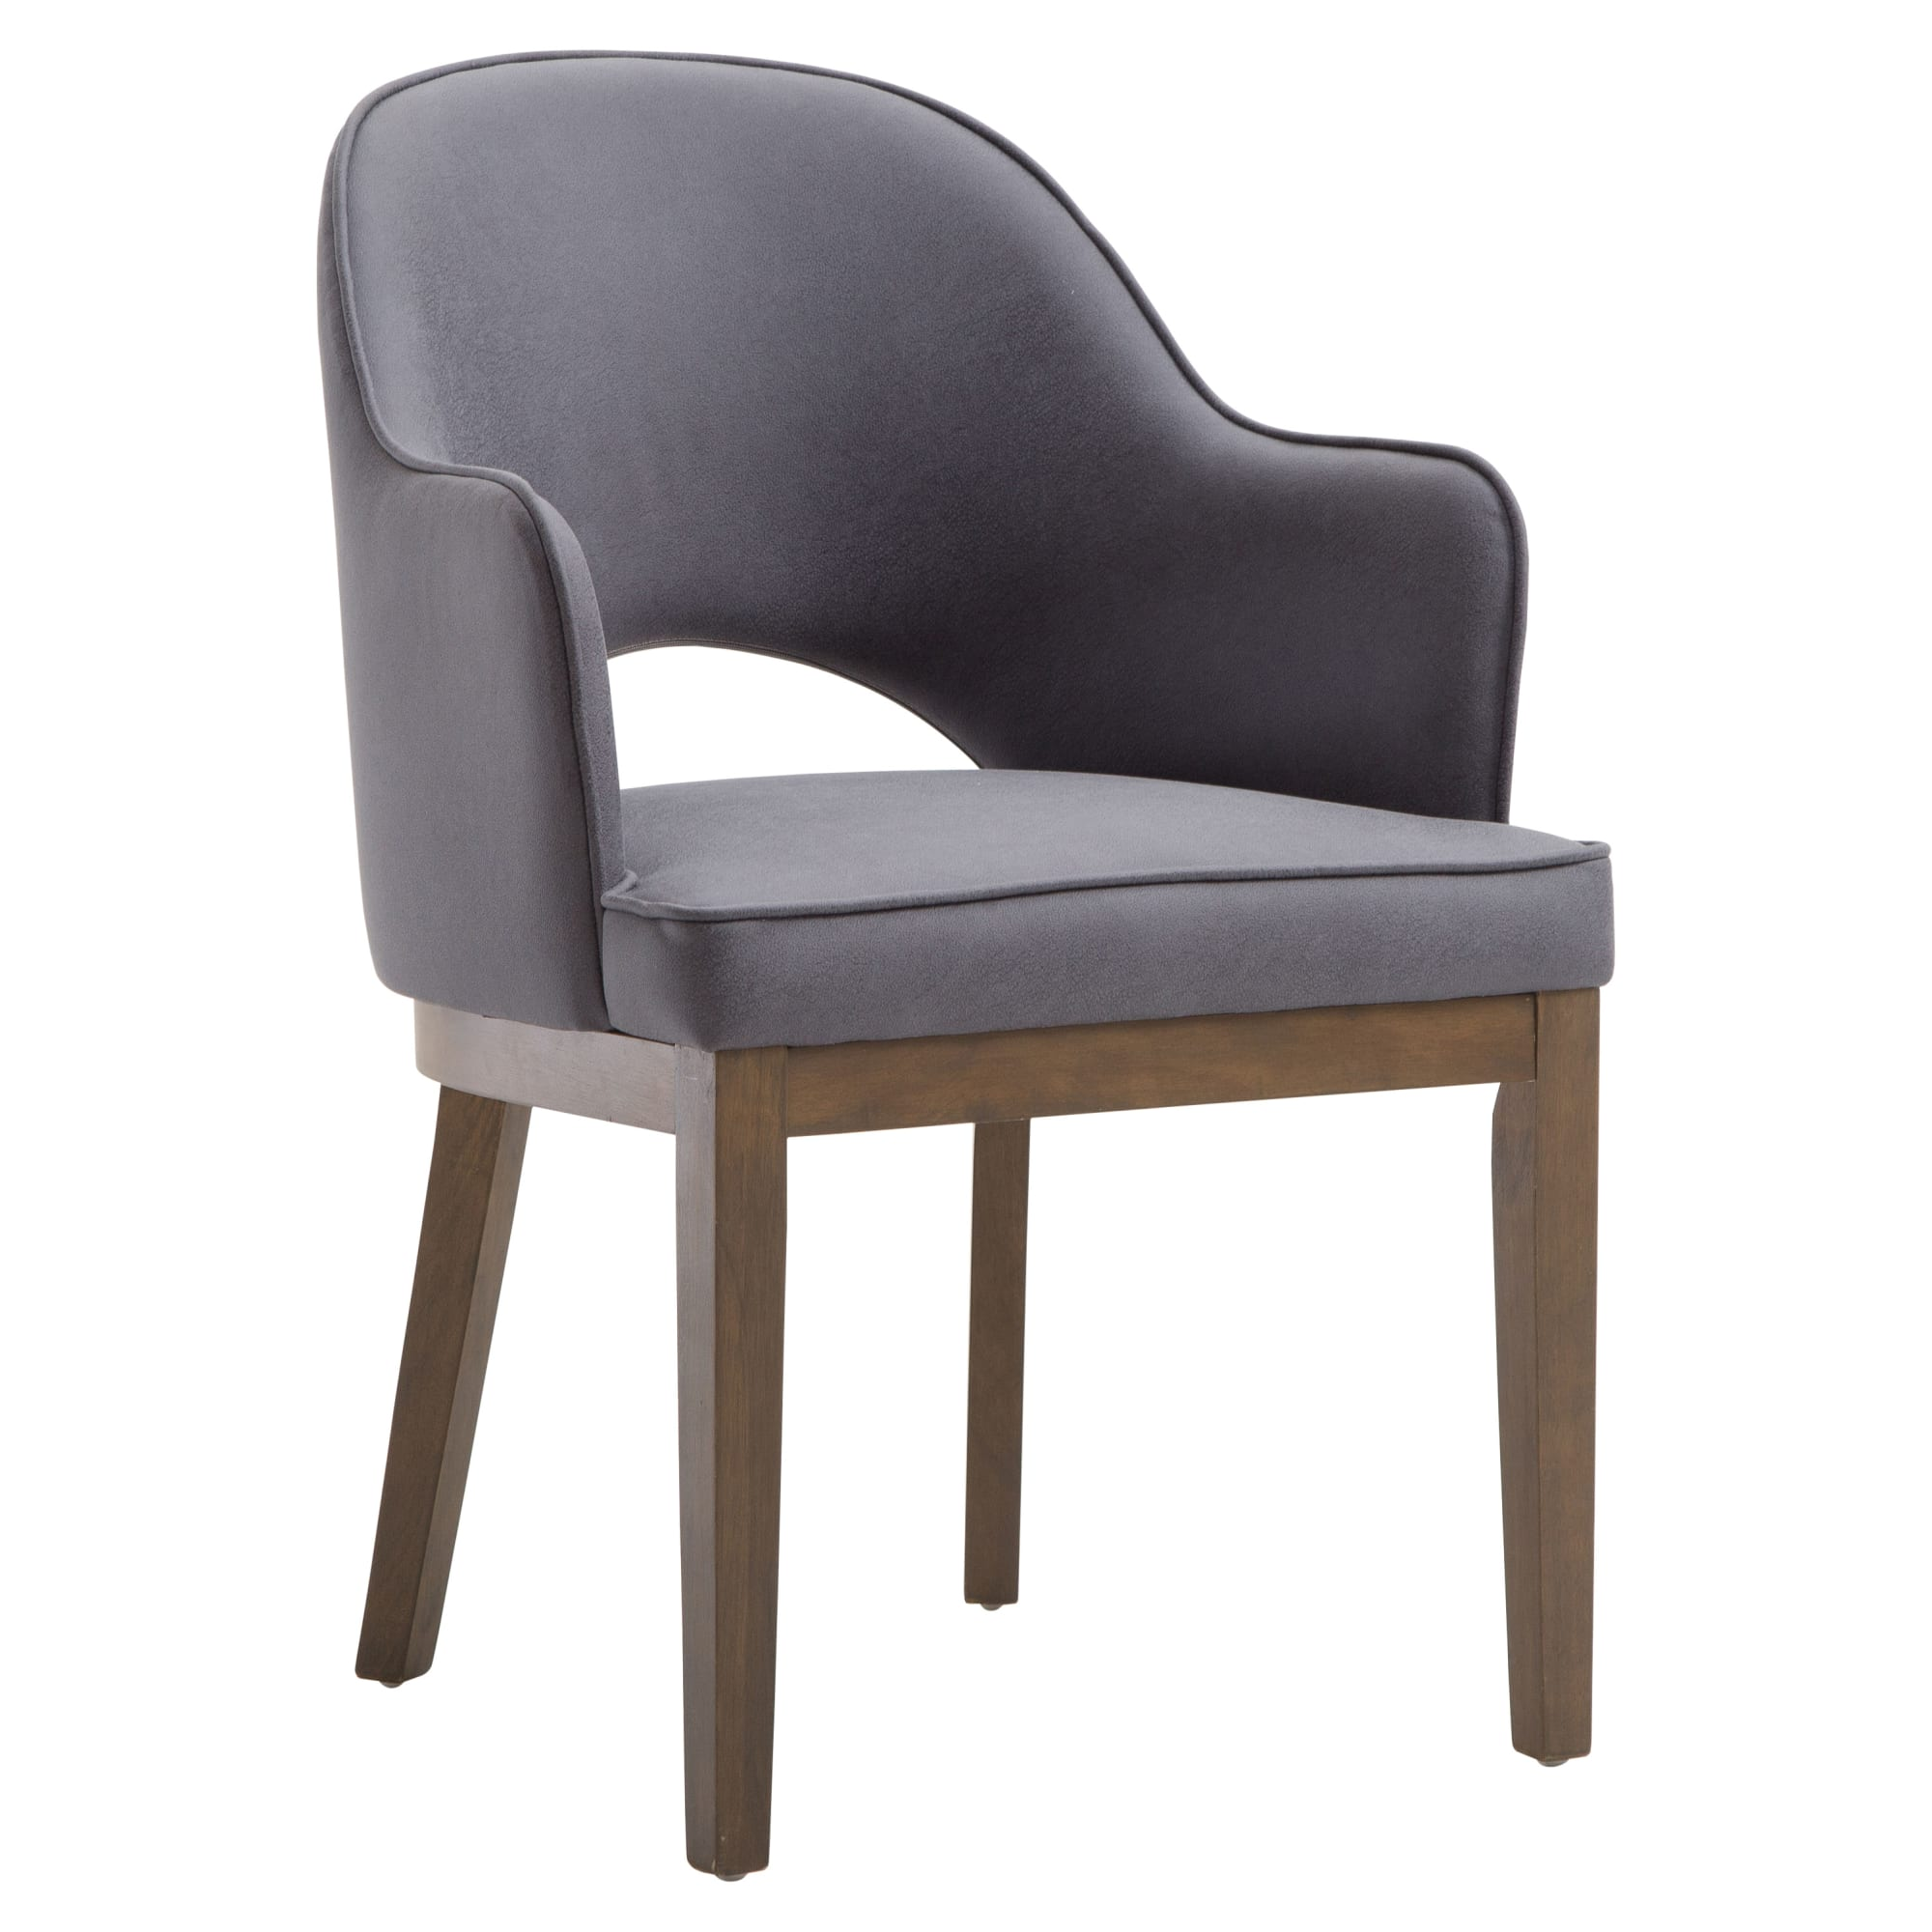 Abramo Upholstered Chair